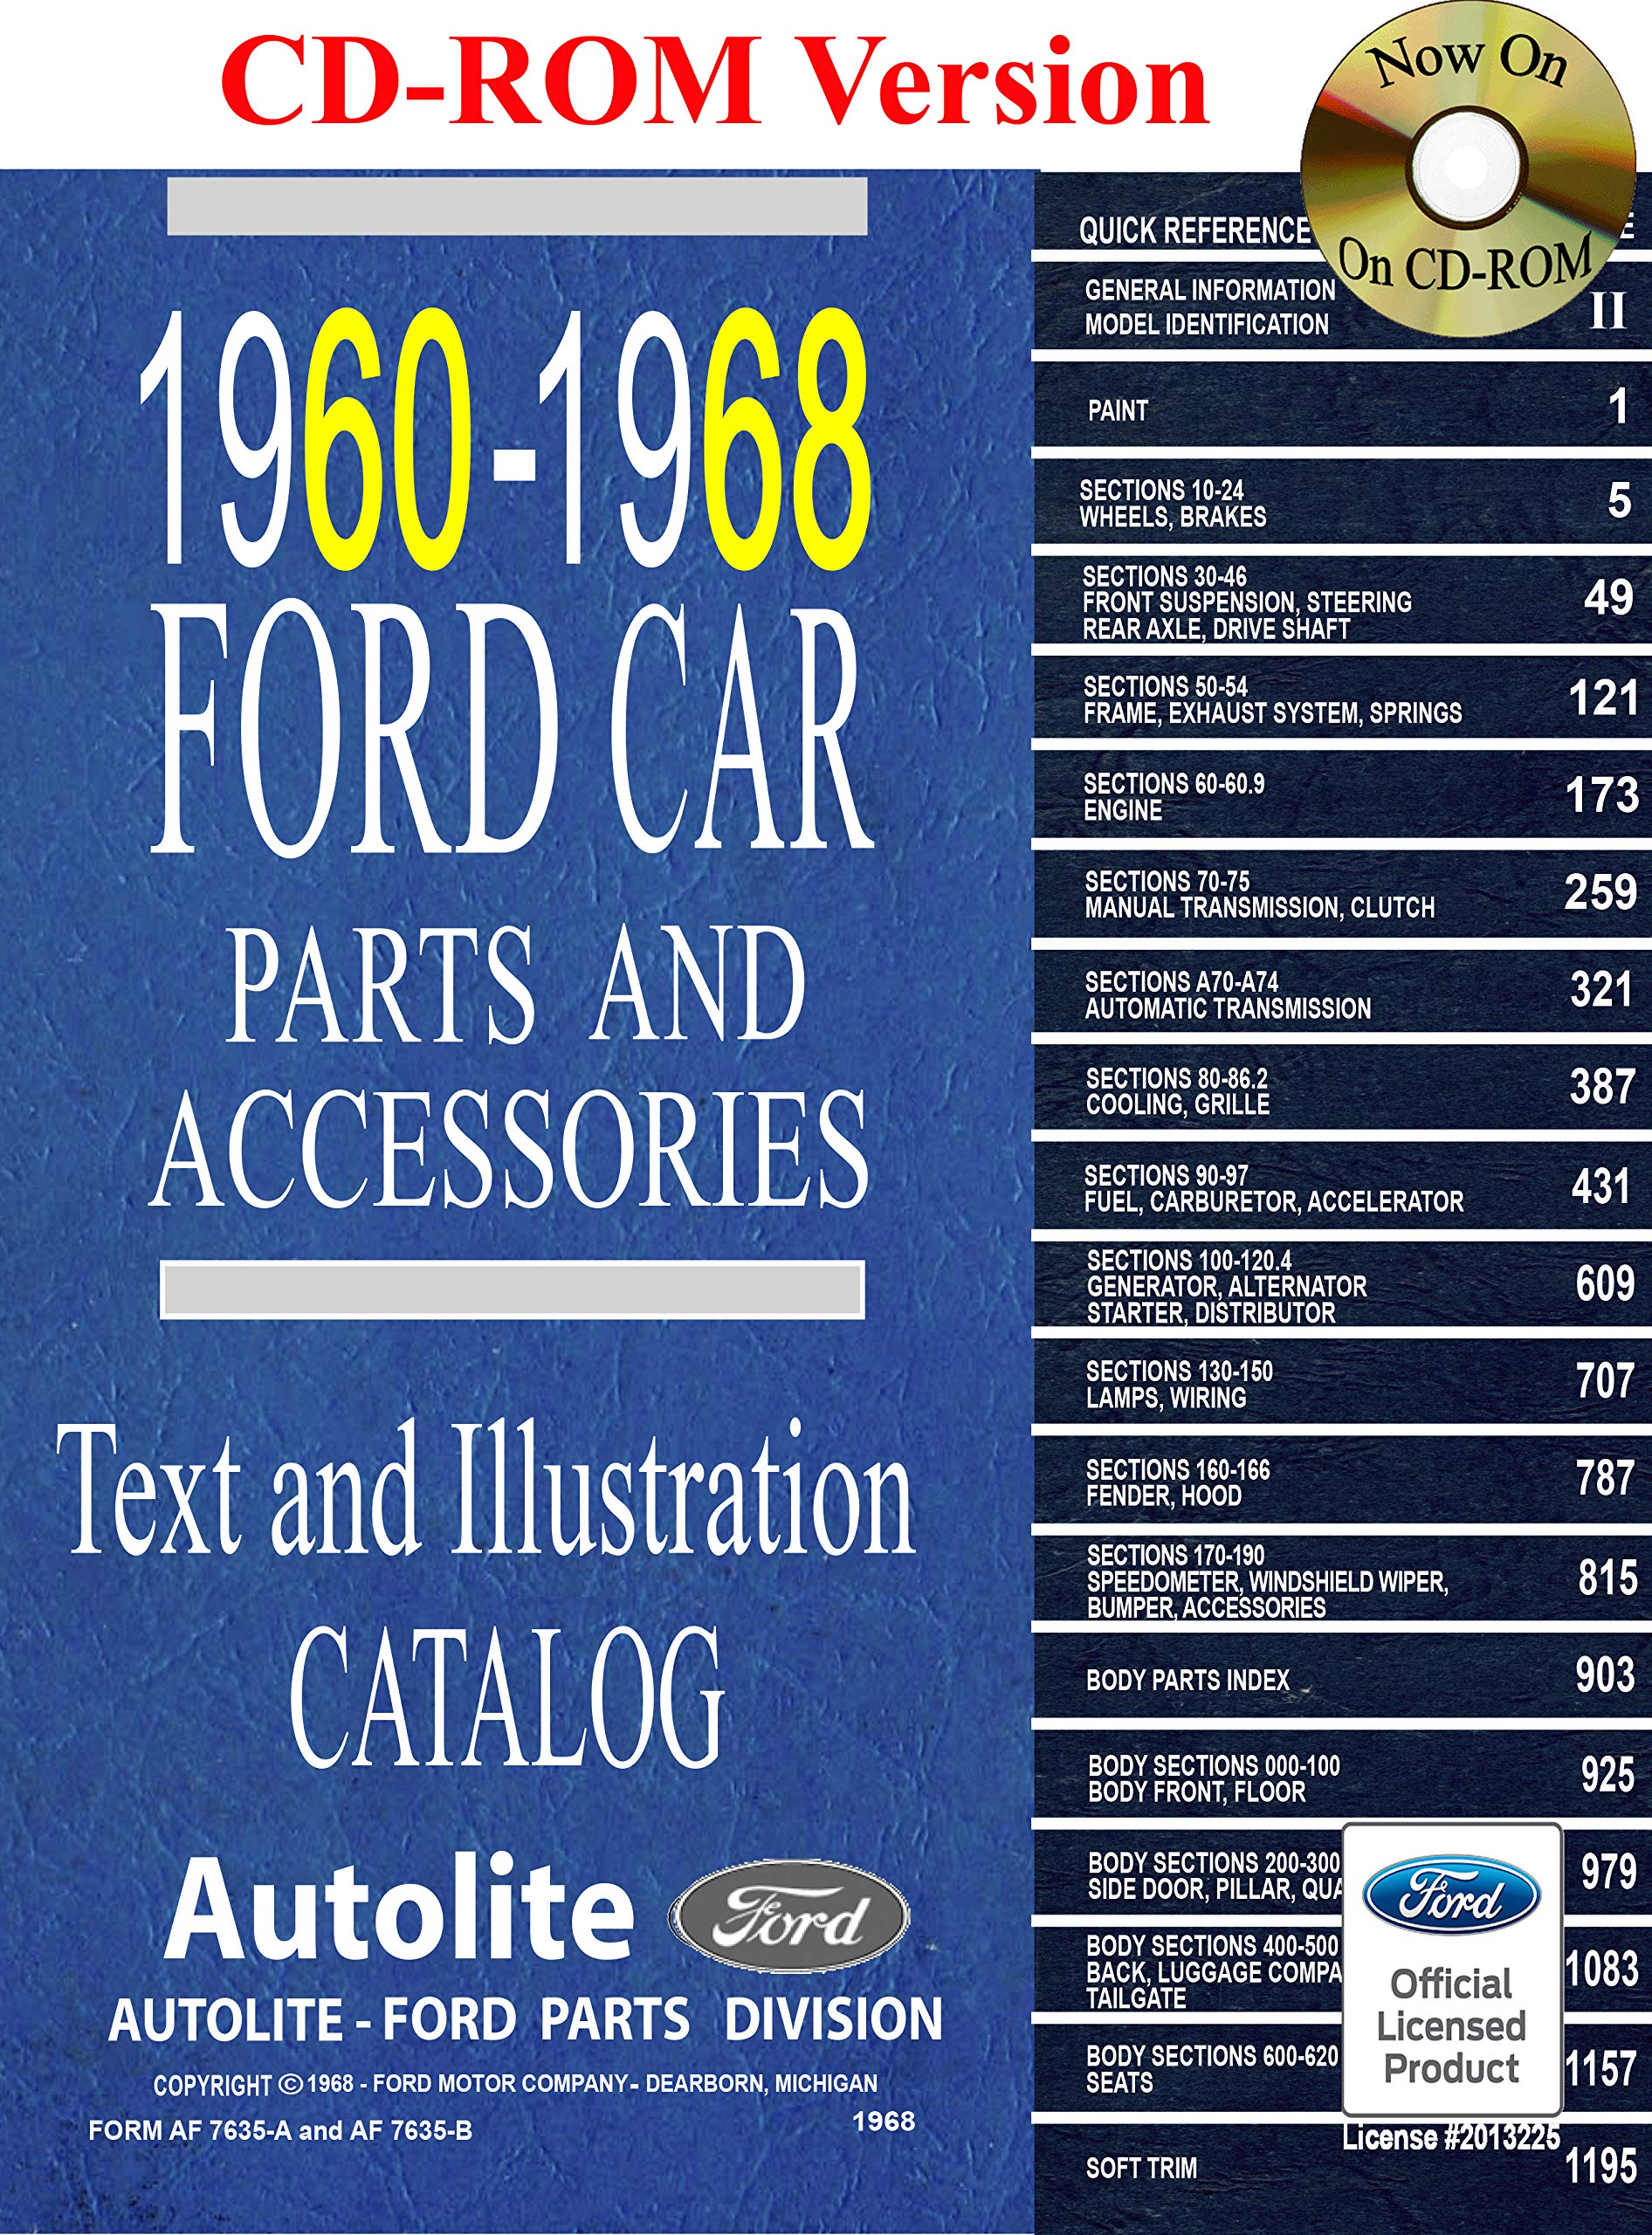 Ford Parts And Accessories >> 1960 68 Ford Car Master Parts And Accessories Catalog Ford Motor